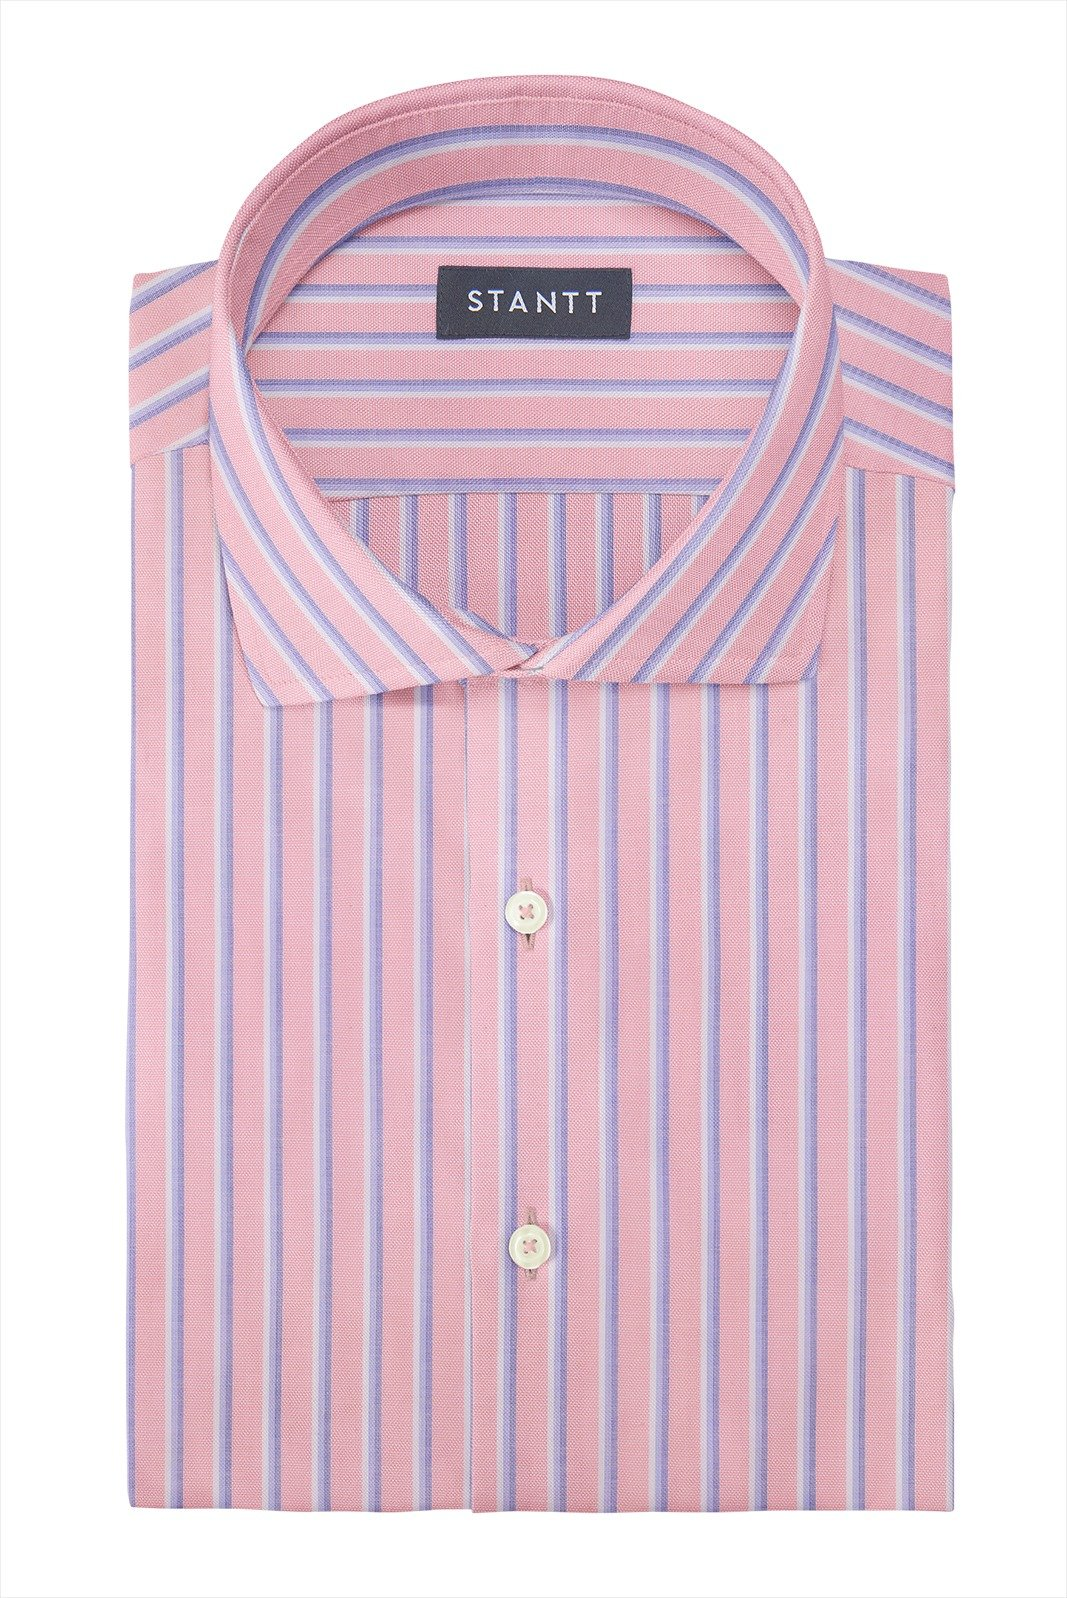 Bold Pink Oxford Stripe: Cutaway Collar, French Cuff